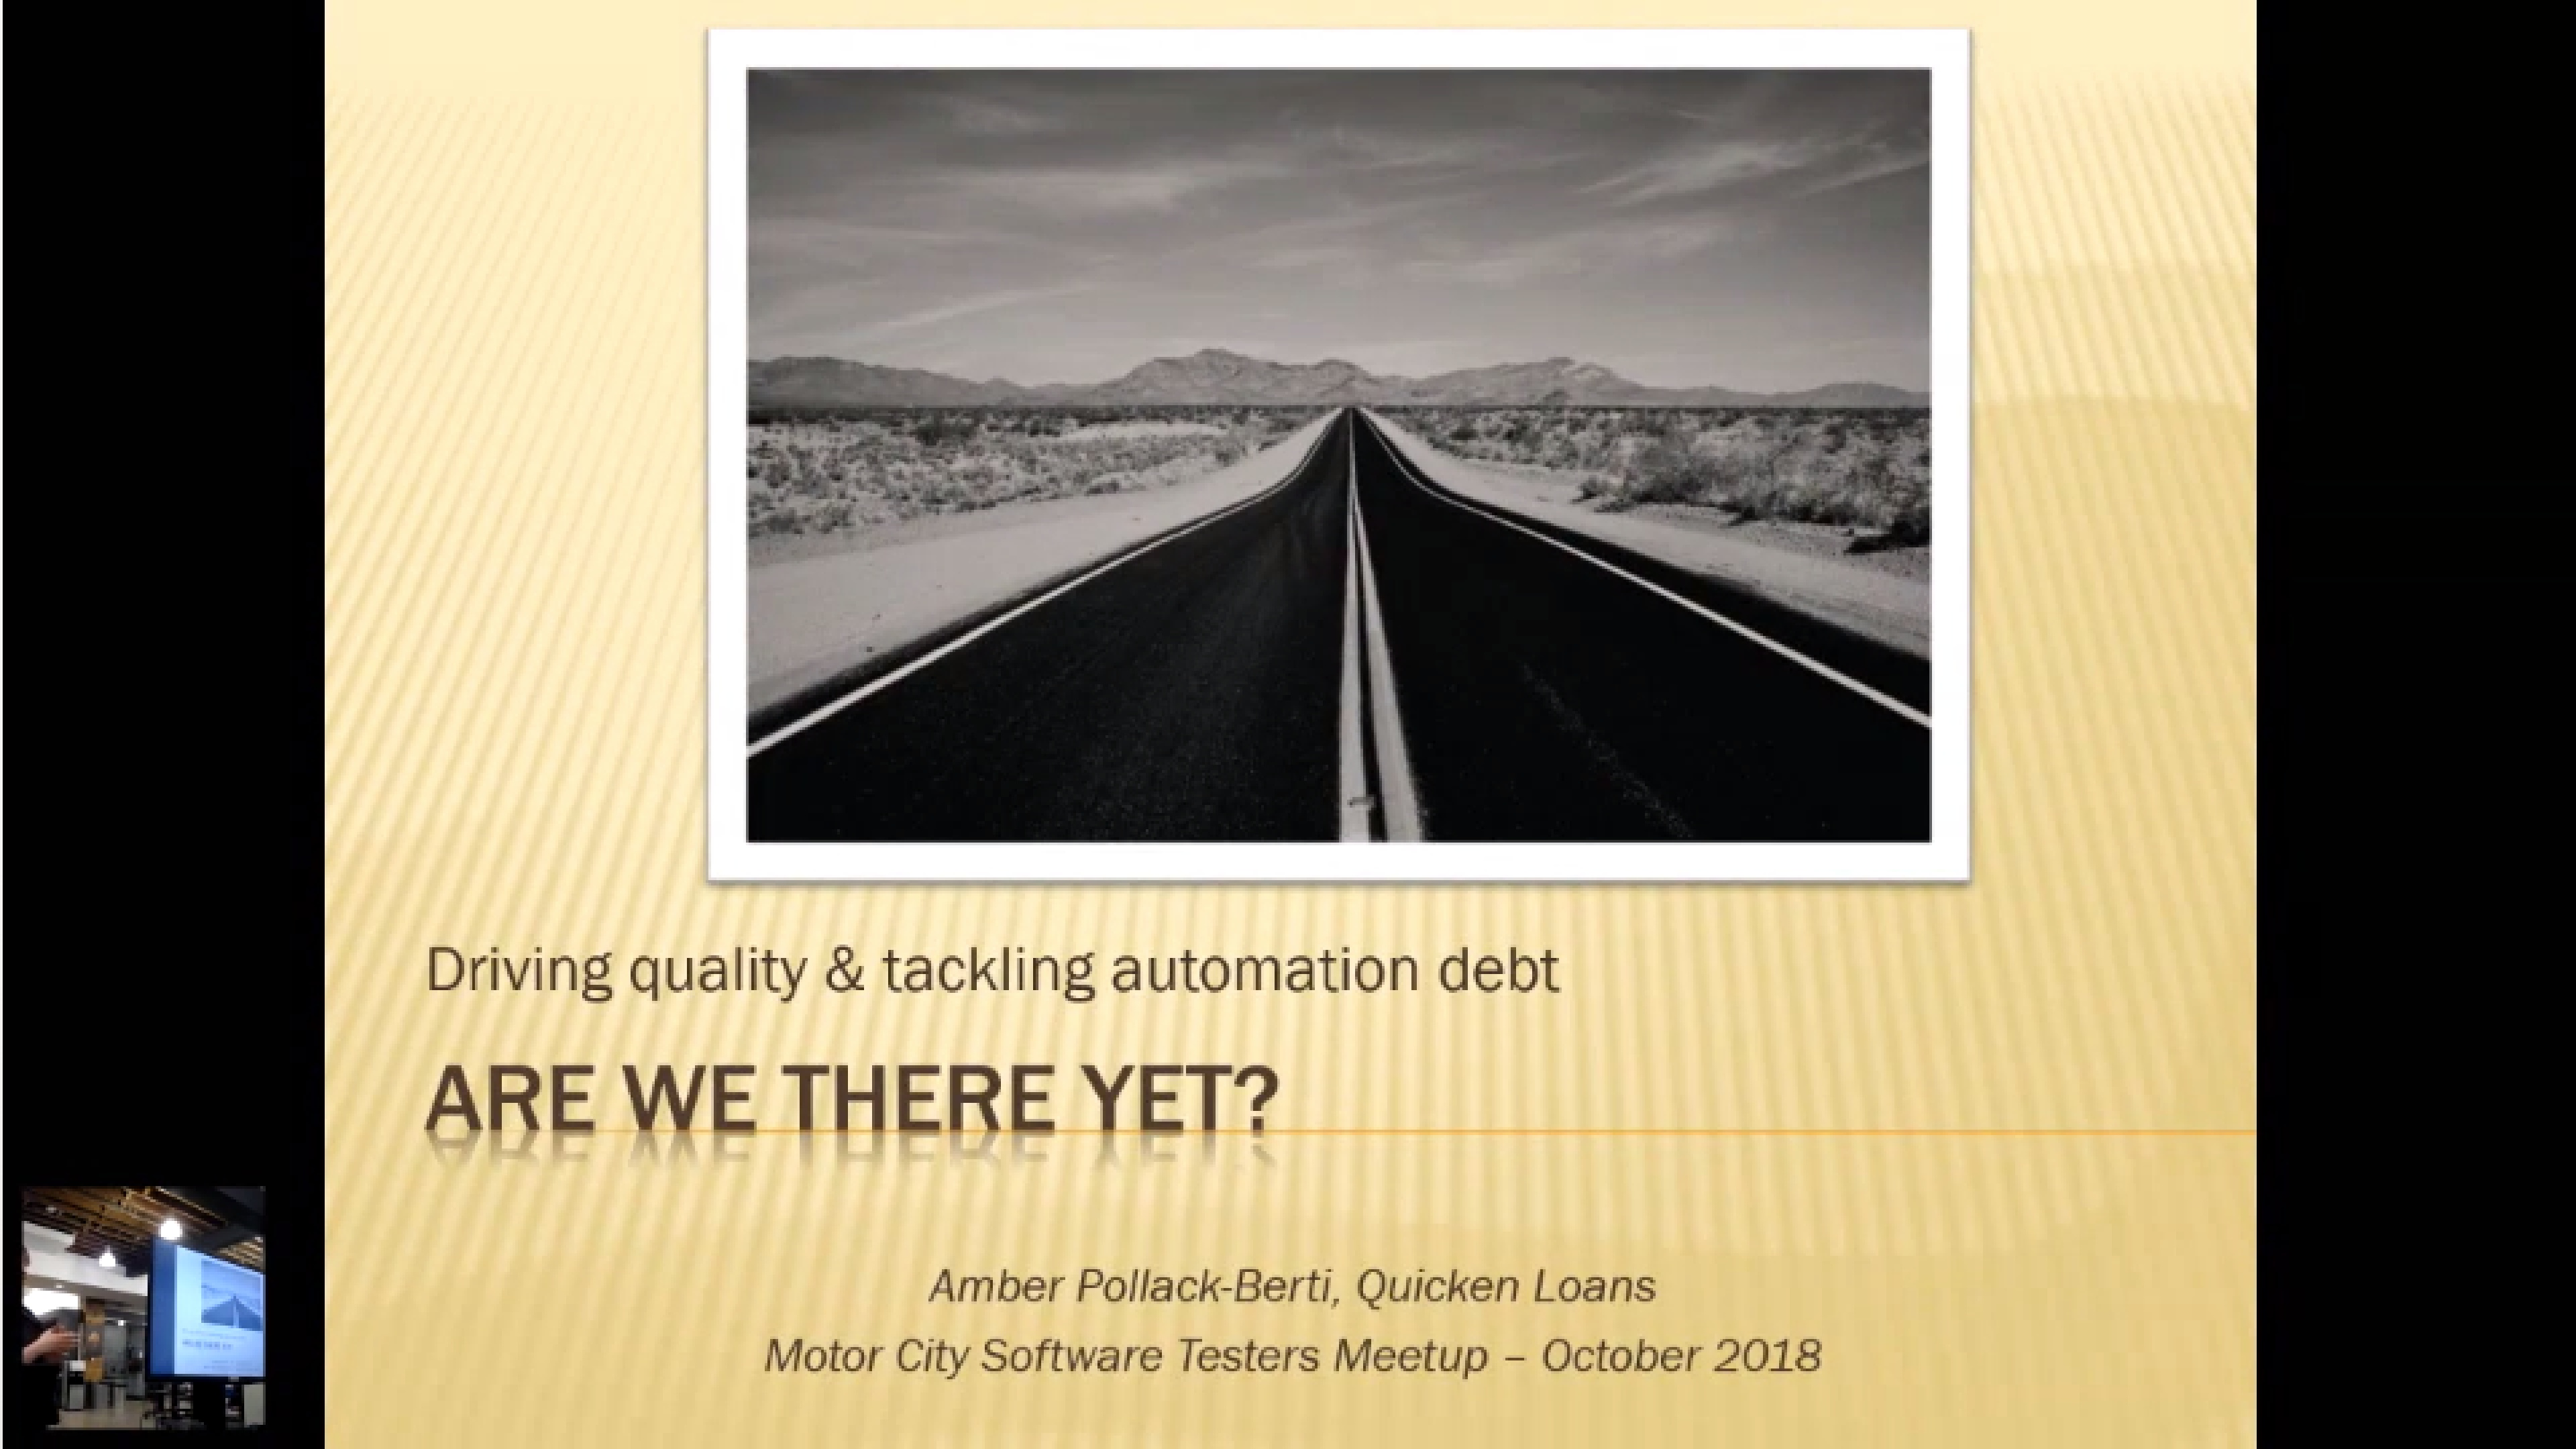 """Are we there yet? Driving quality & tackling automation debt"" with Amber Pollack-Berti"